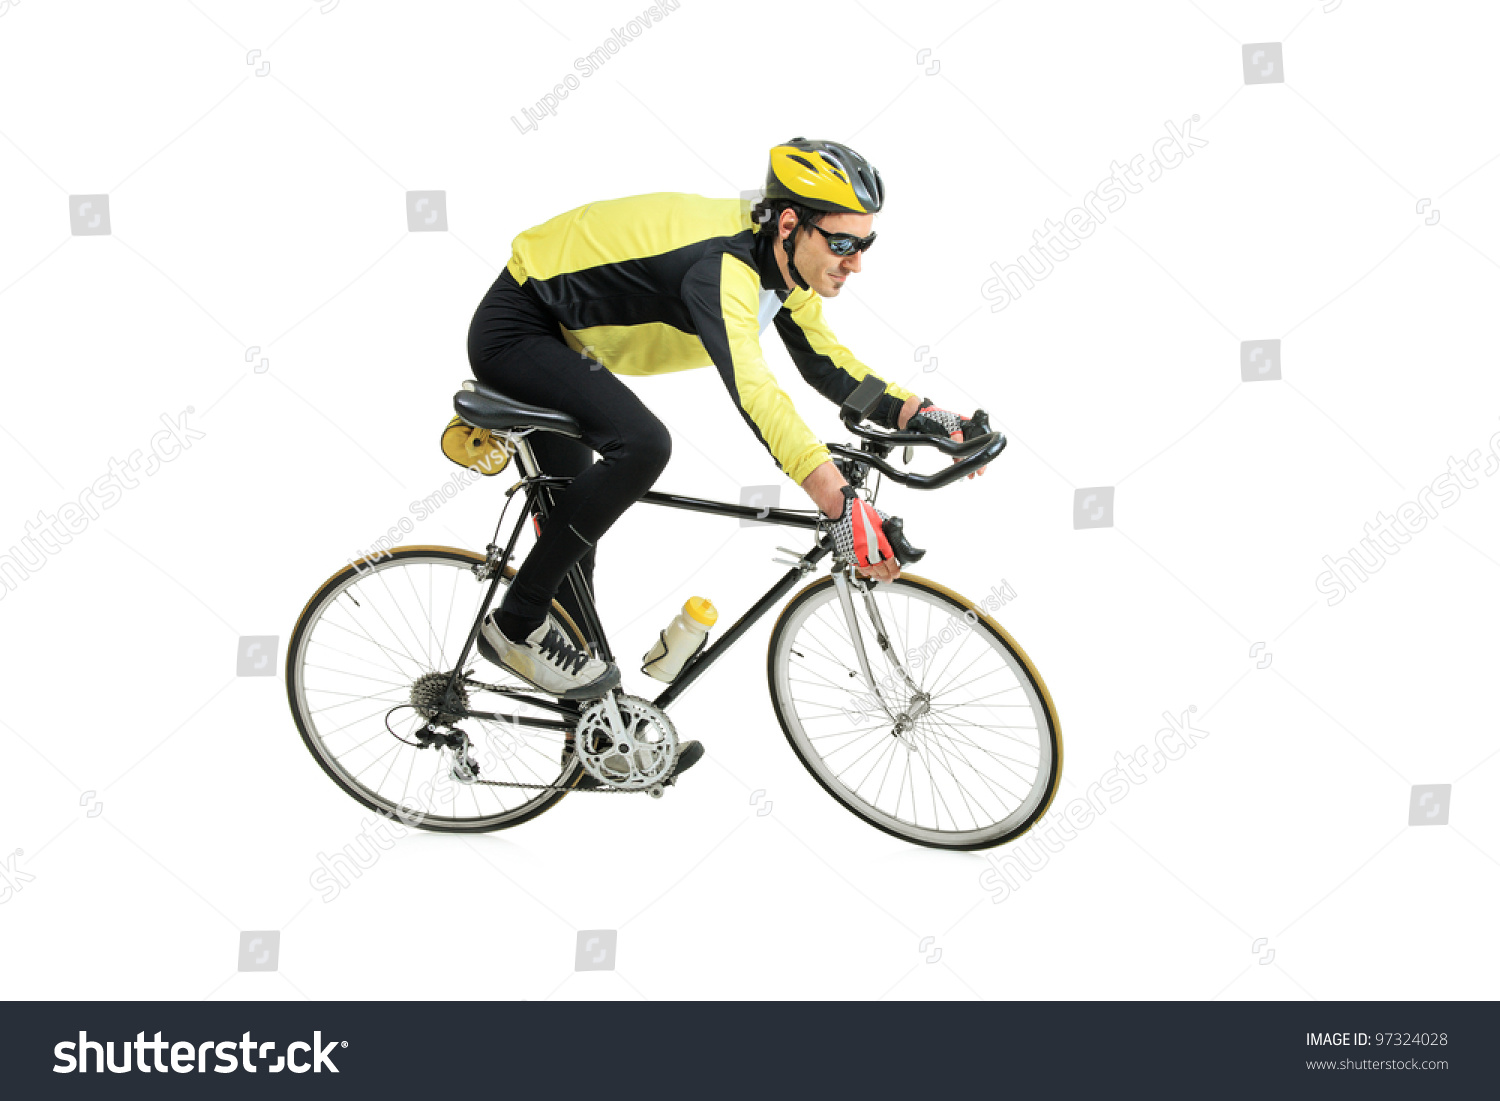 Young Man Riding A Bicycle Isolated Against White Background Stock ...